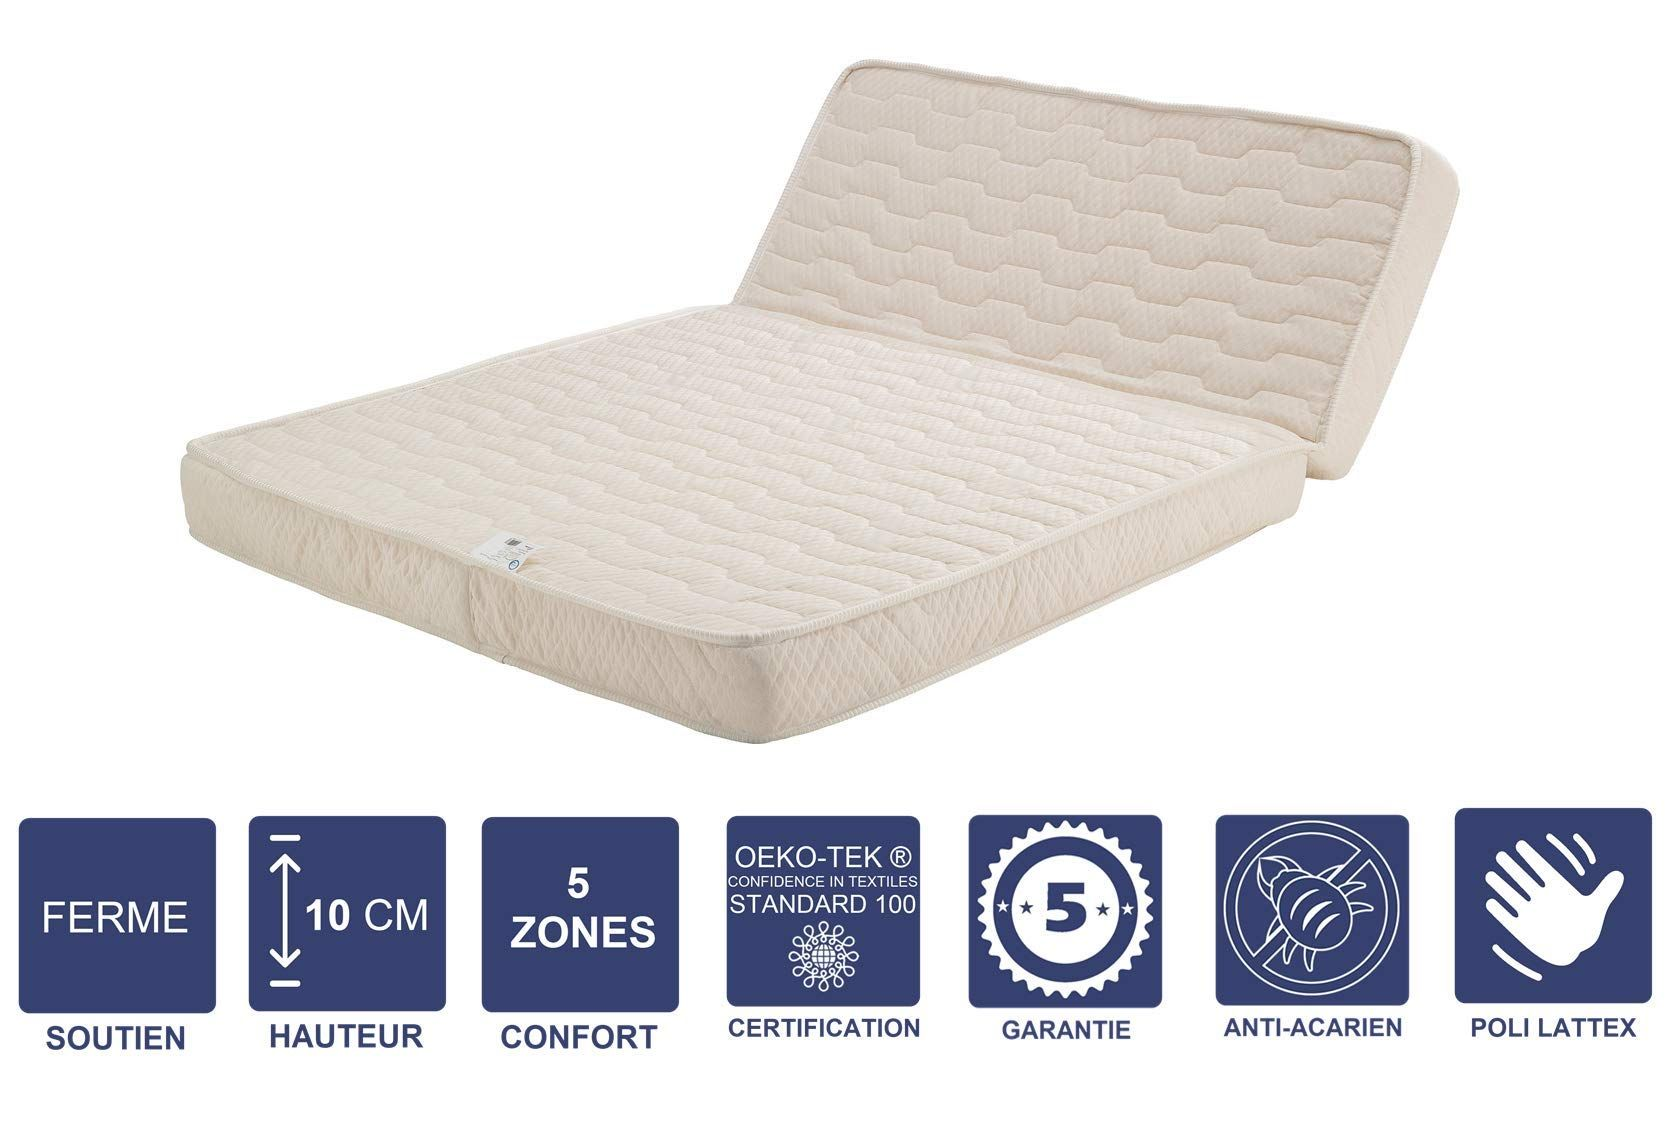 Matelas Ferme Pour Tous Bz 140x190 X 10 Cm Decoupe Assise 60 Cm 5 Zones De Confort Noyau Poli Lattex Hr Derniere Generat In 2020 Furniture Floor Chair Home Decor